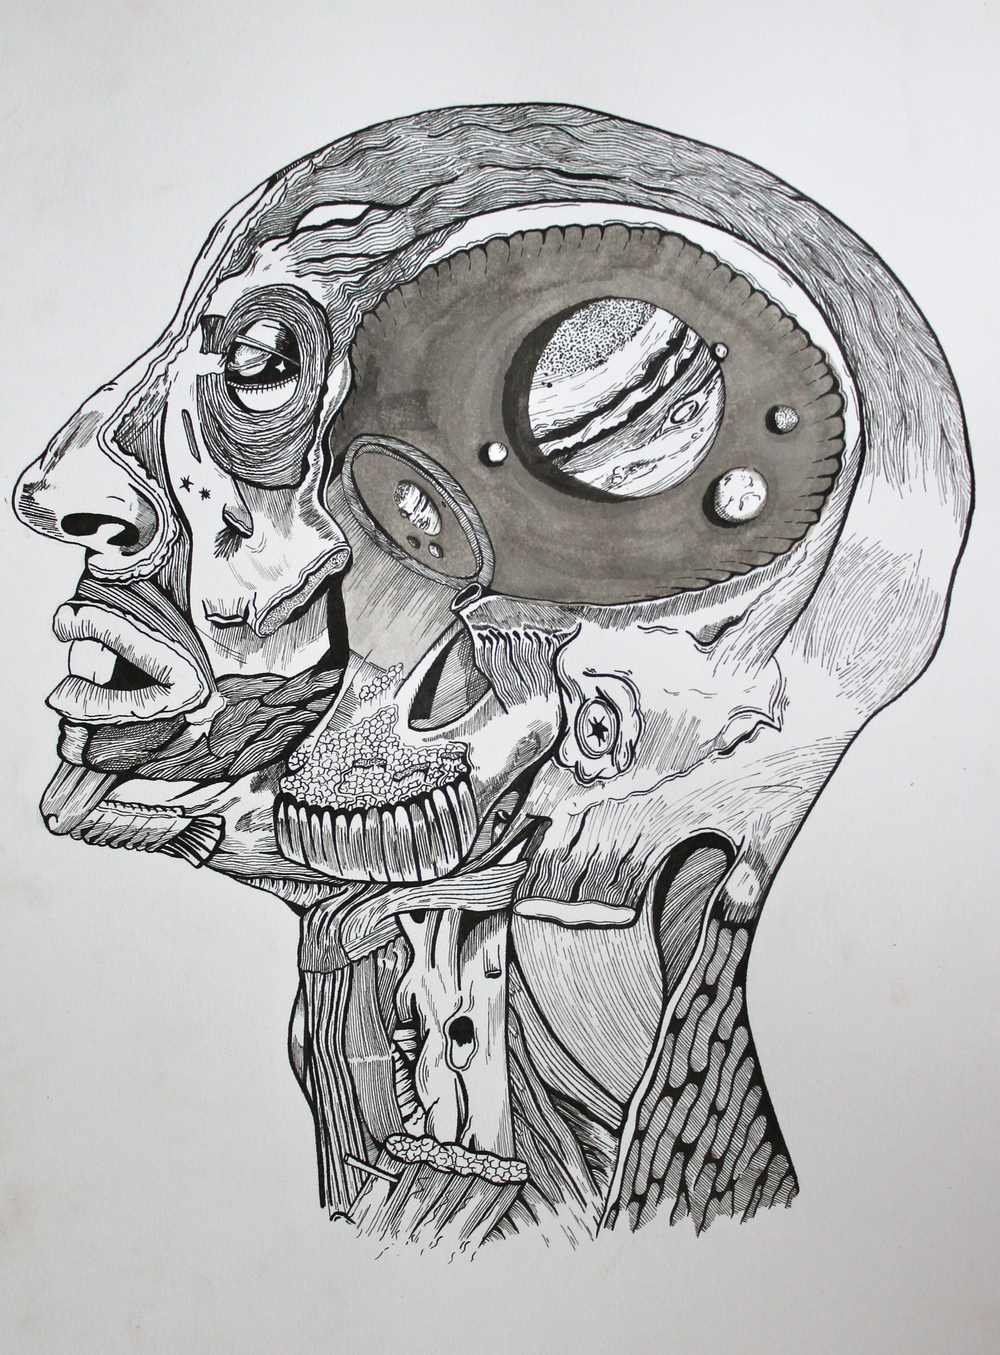 Galileo's Mind, Pen & Ink on Watercolor